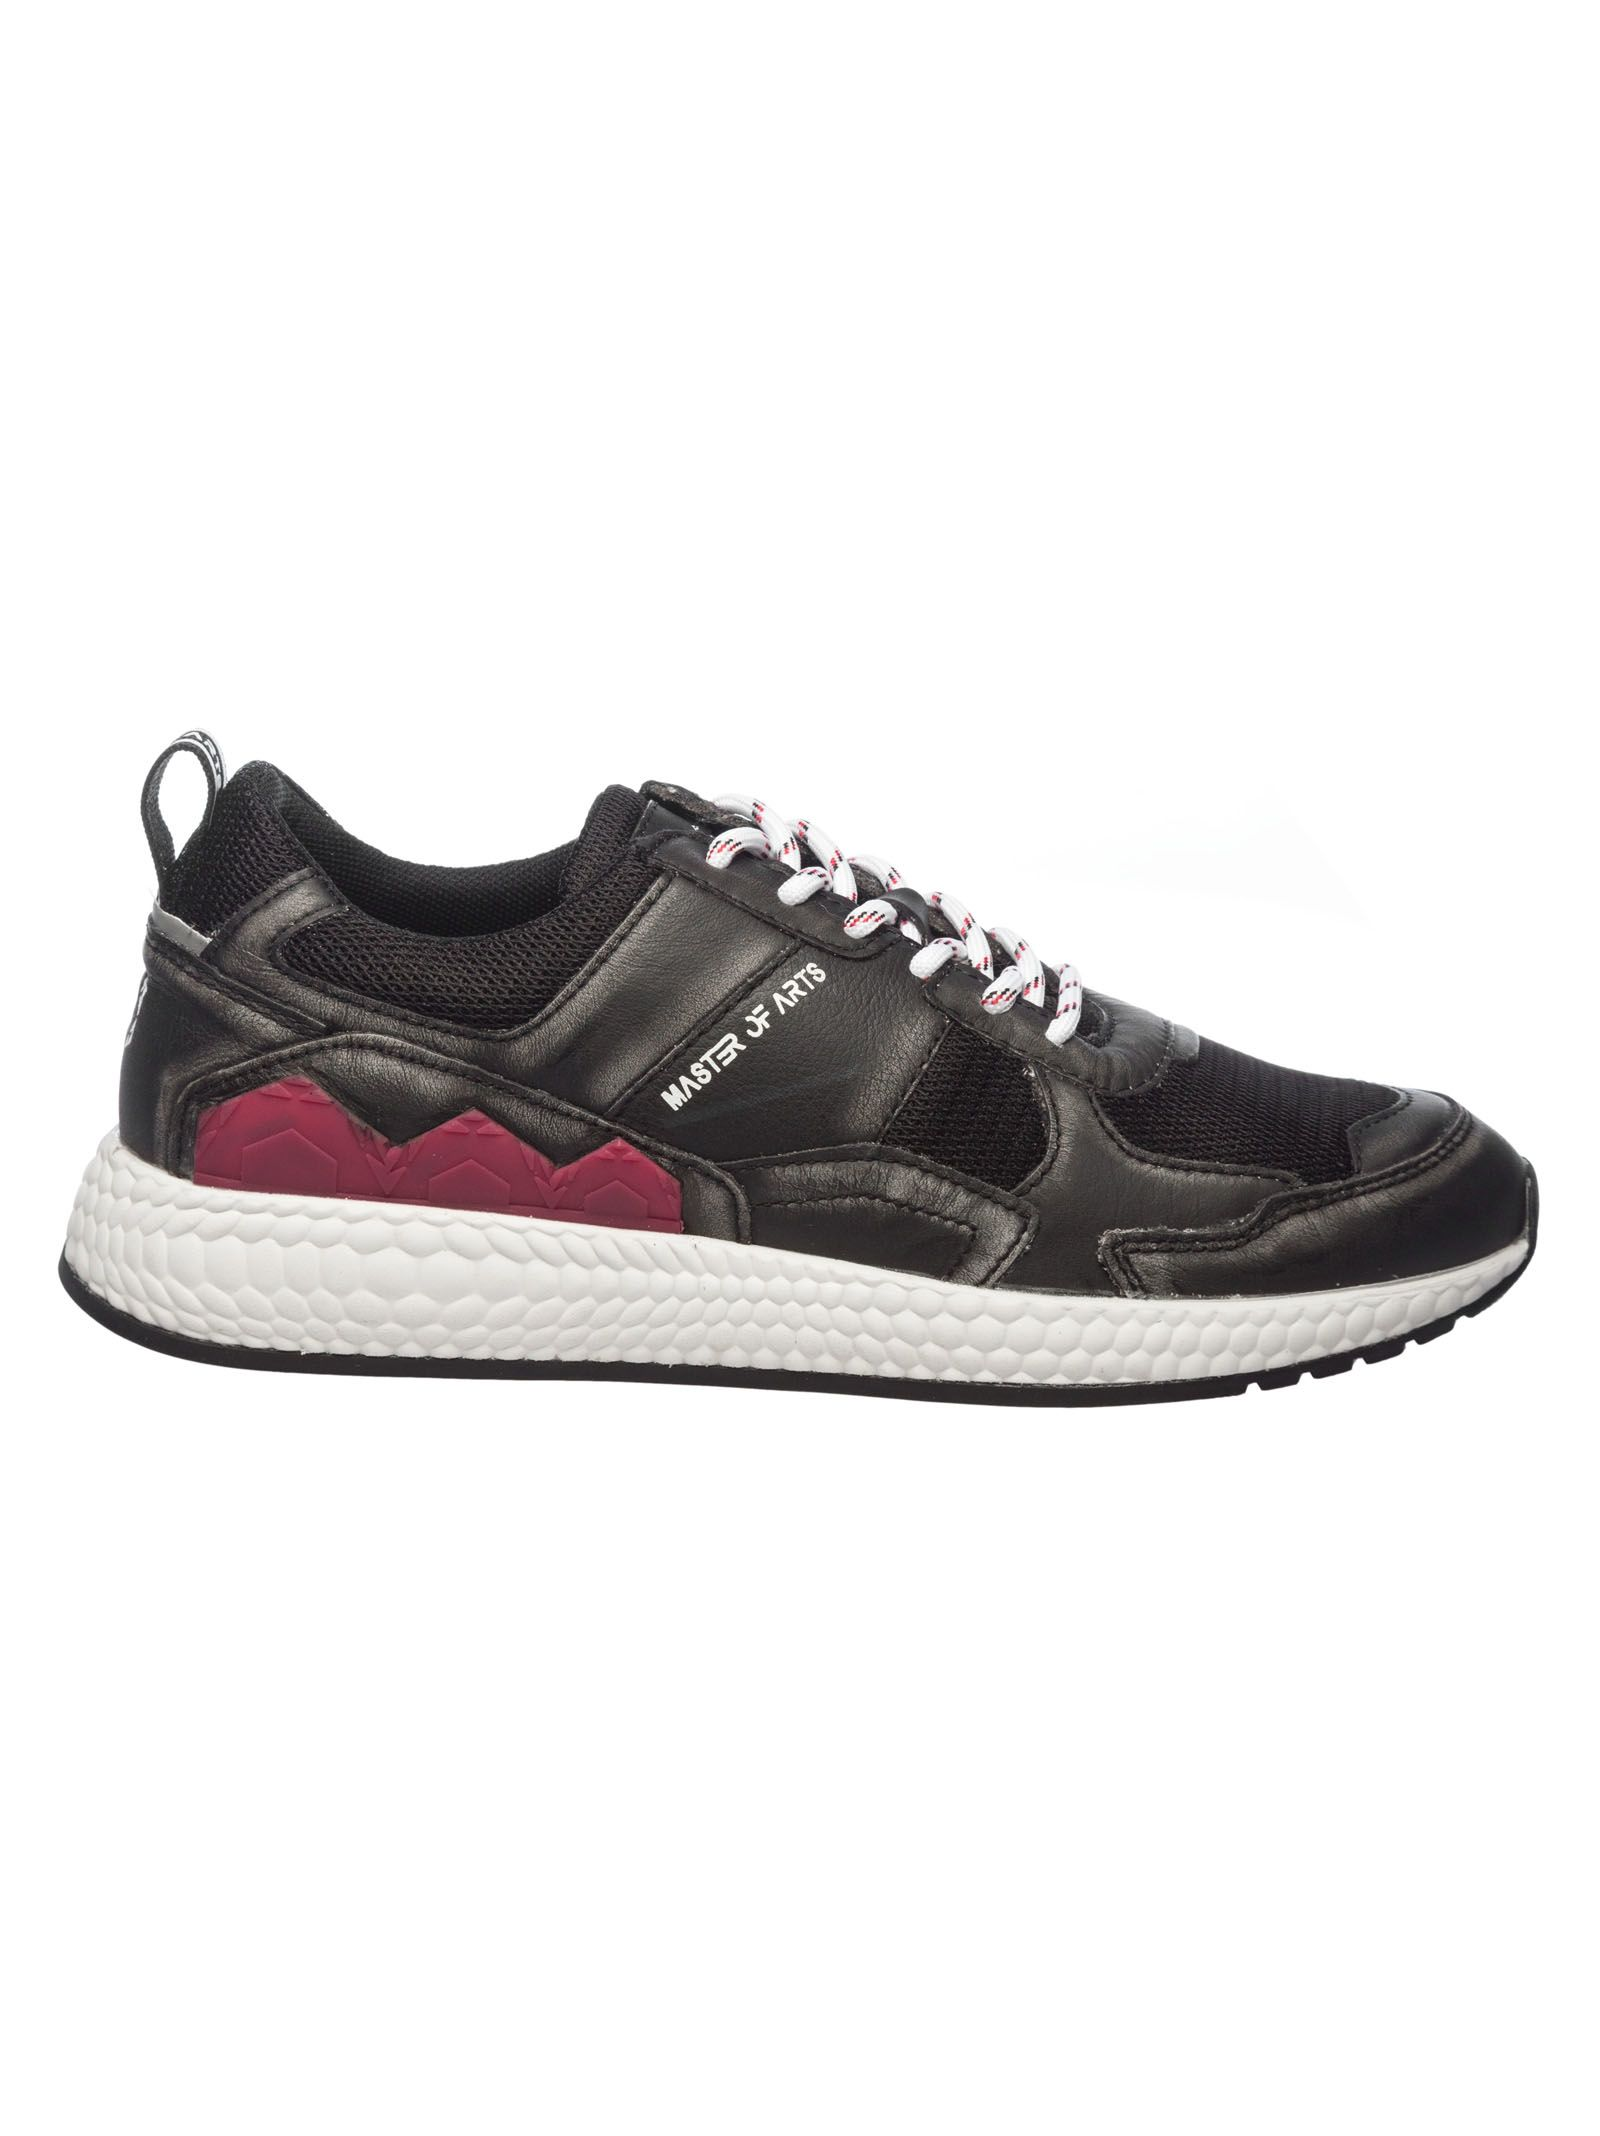 MOA COLLECTION Moa Usa Contrast Panel Sneakers in Black